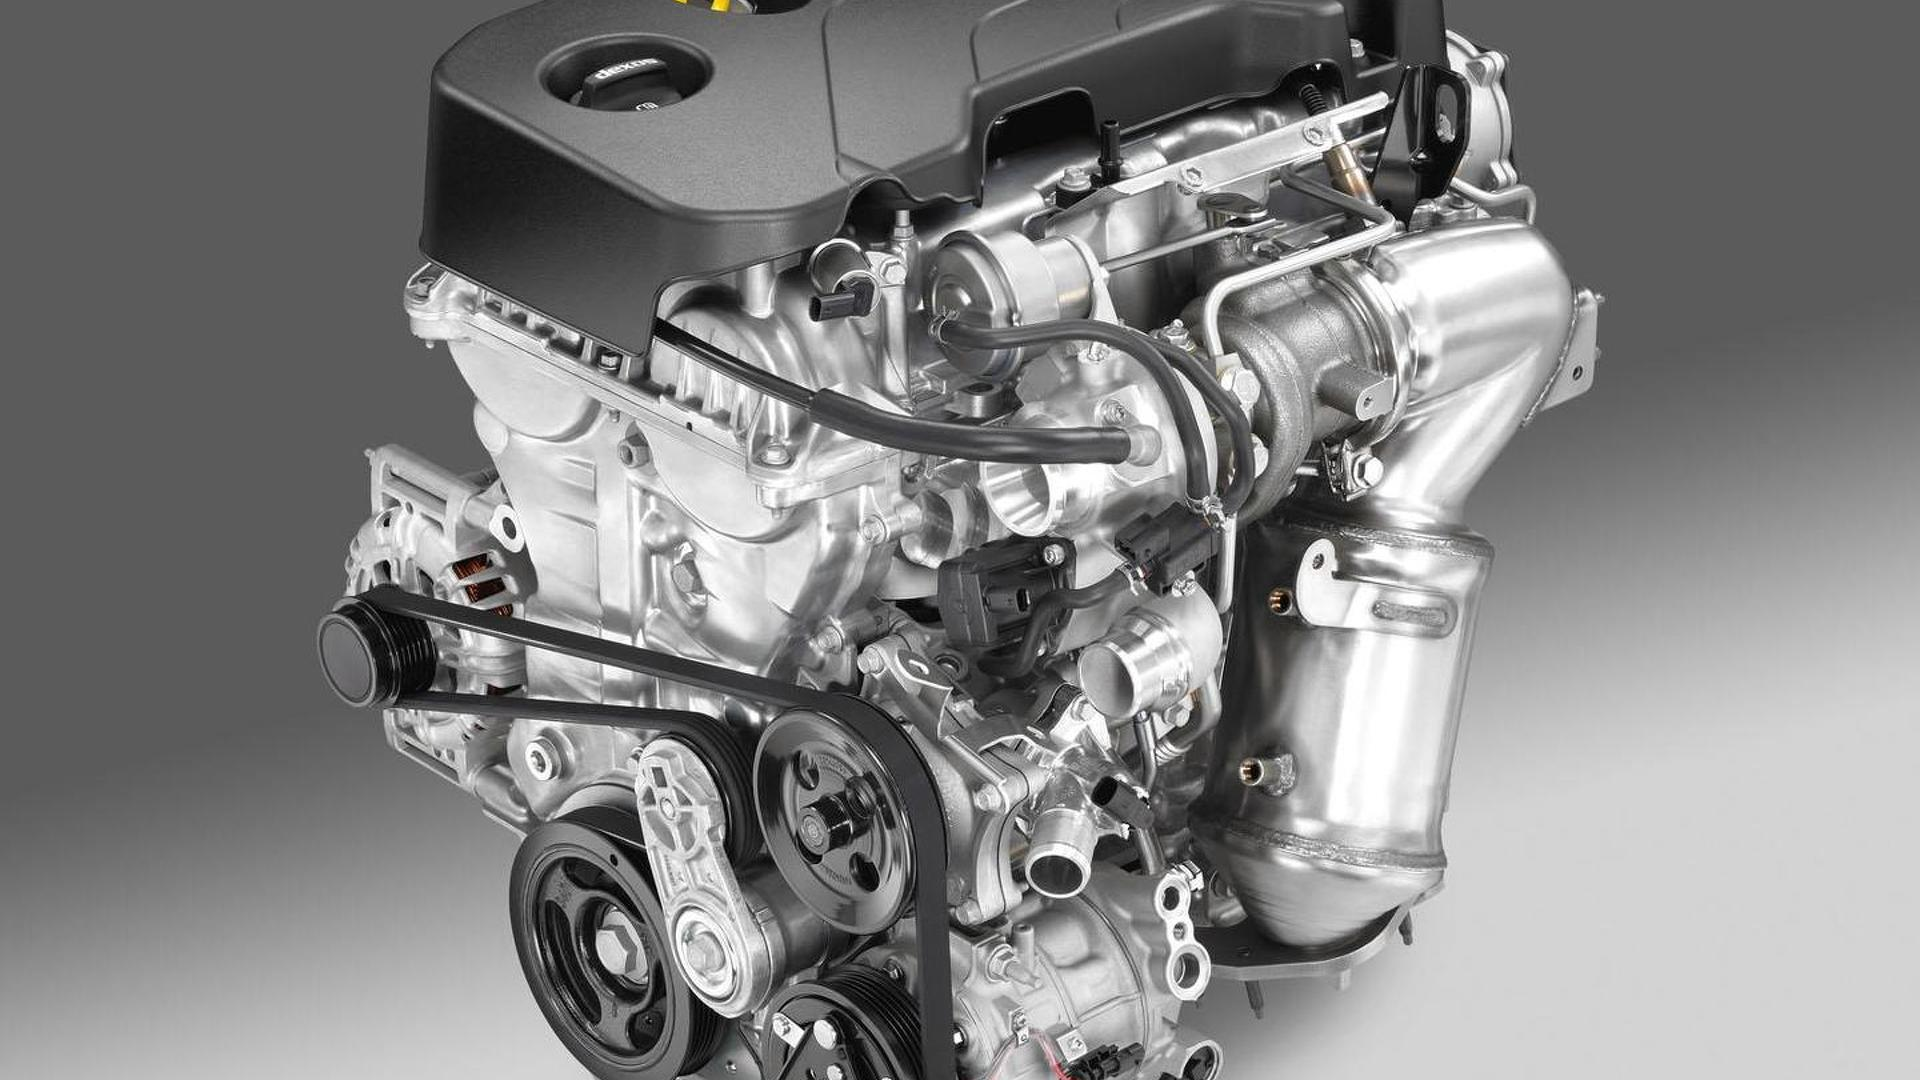 opel highlights the new 1.4-liter turbo engine that will debut in